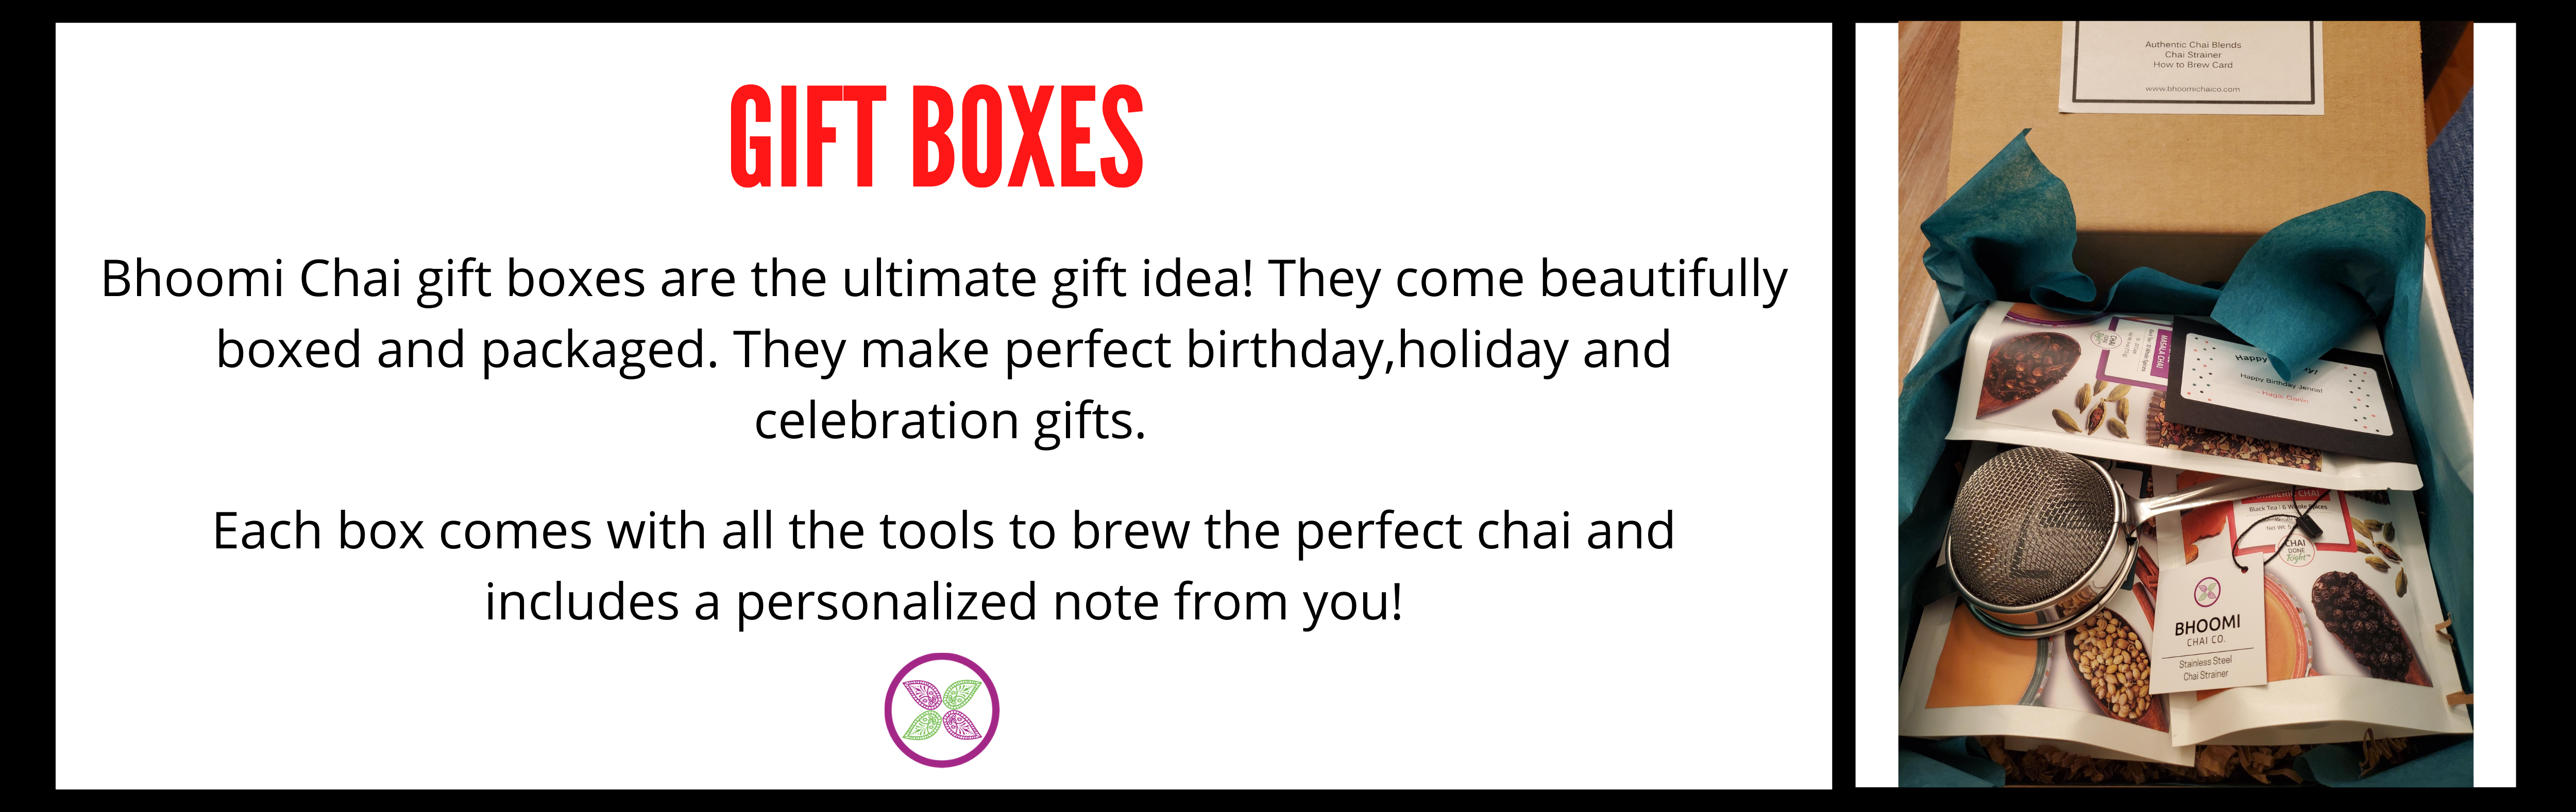 giftboxes.png